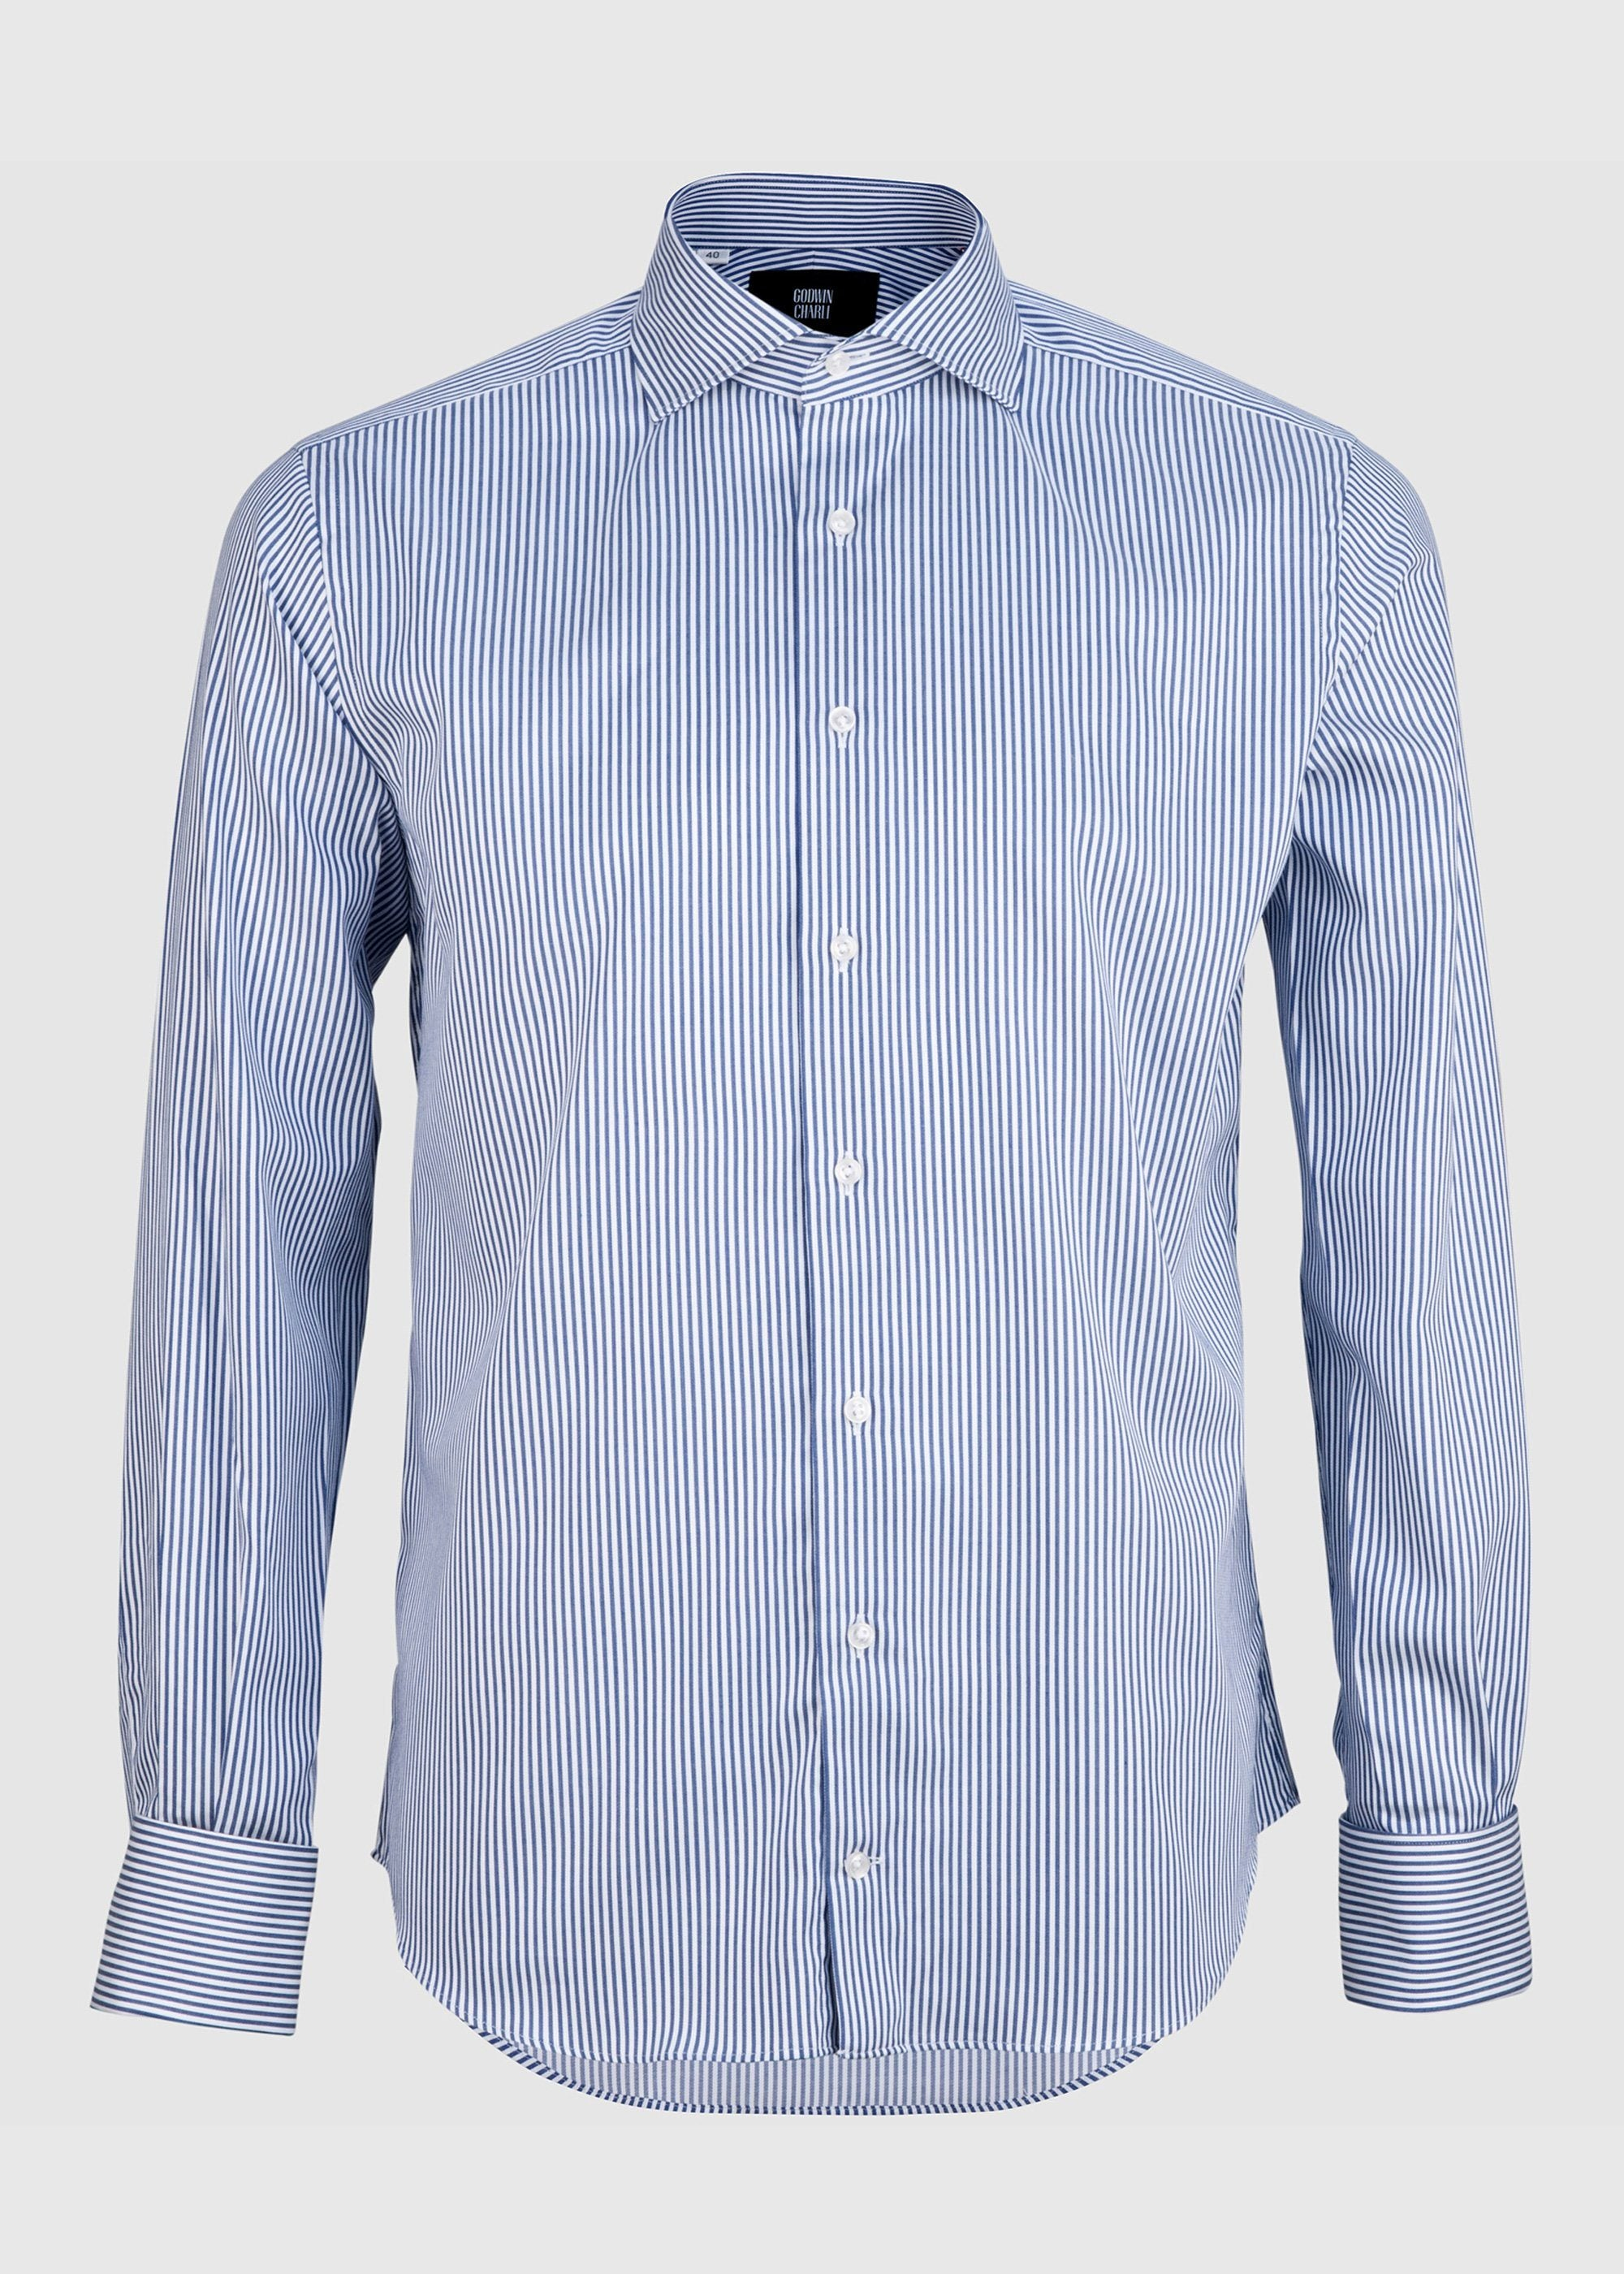 Pilot (FC) Shirt - Navy Pin Stripe